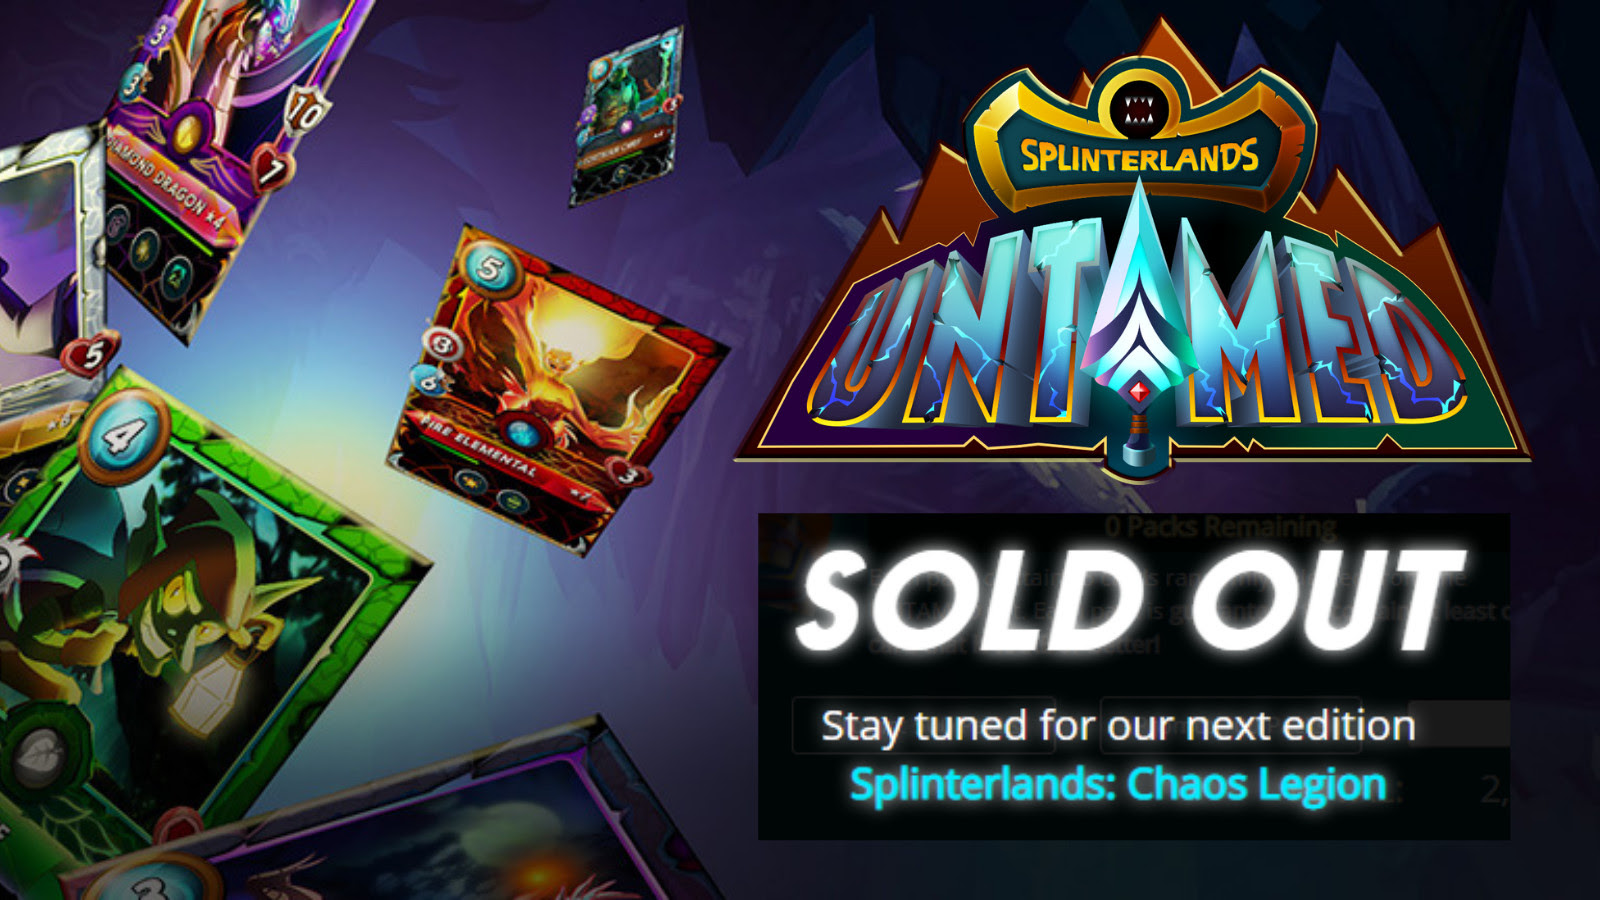 Splinterlands Blockchain-Backed Game Announces Sell Out Of 1.5M Untamed Edition Booster Packs